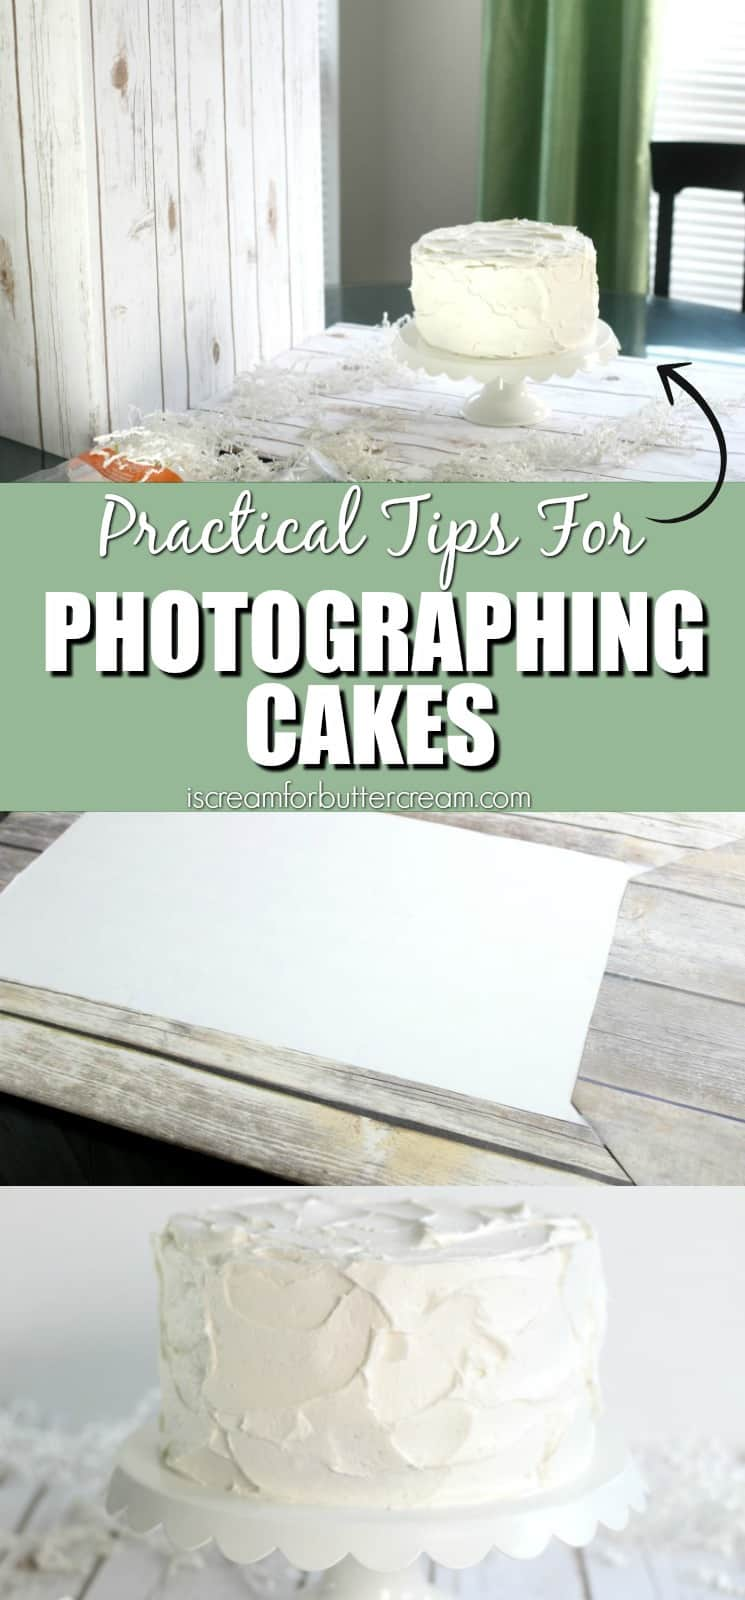 Practical Tips for Photographing Cakes Pinterest Graphic